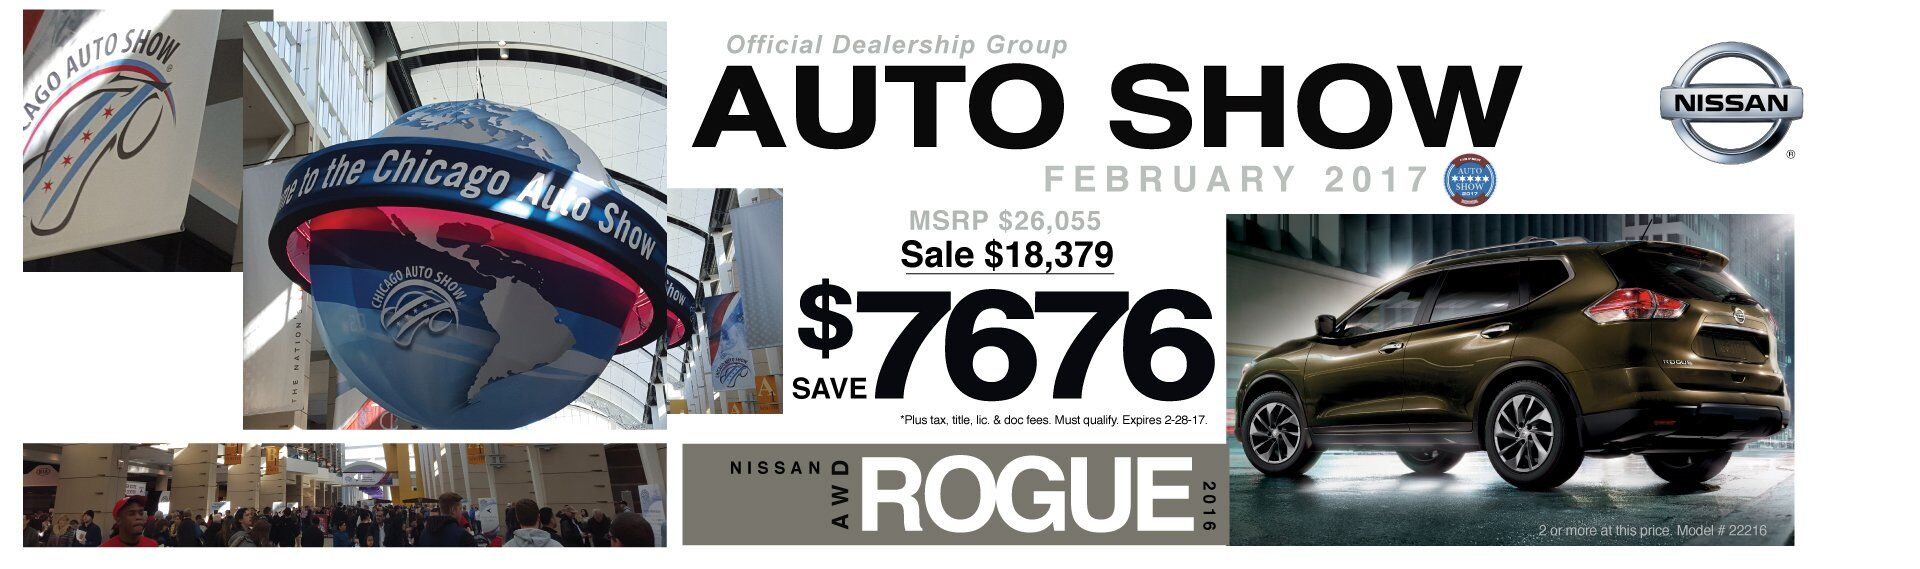 Save $7676 On A New 2016 Nissan Rogue